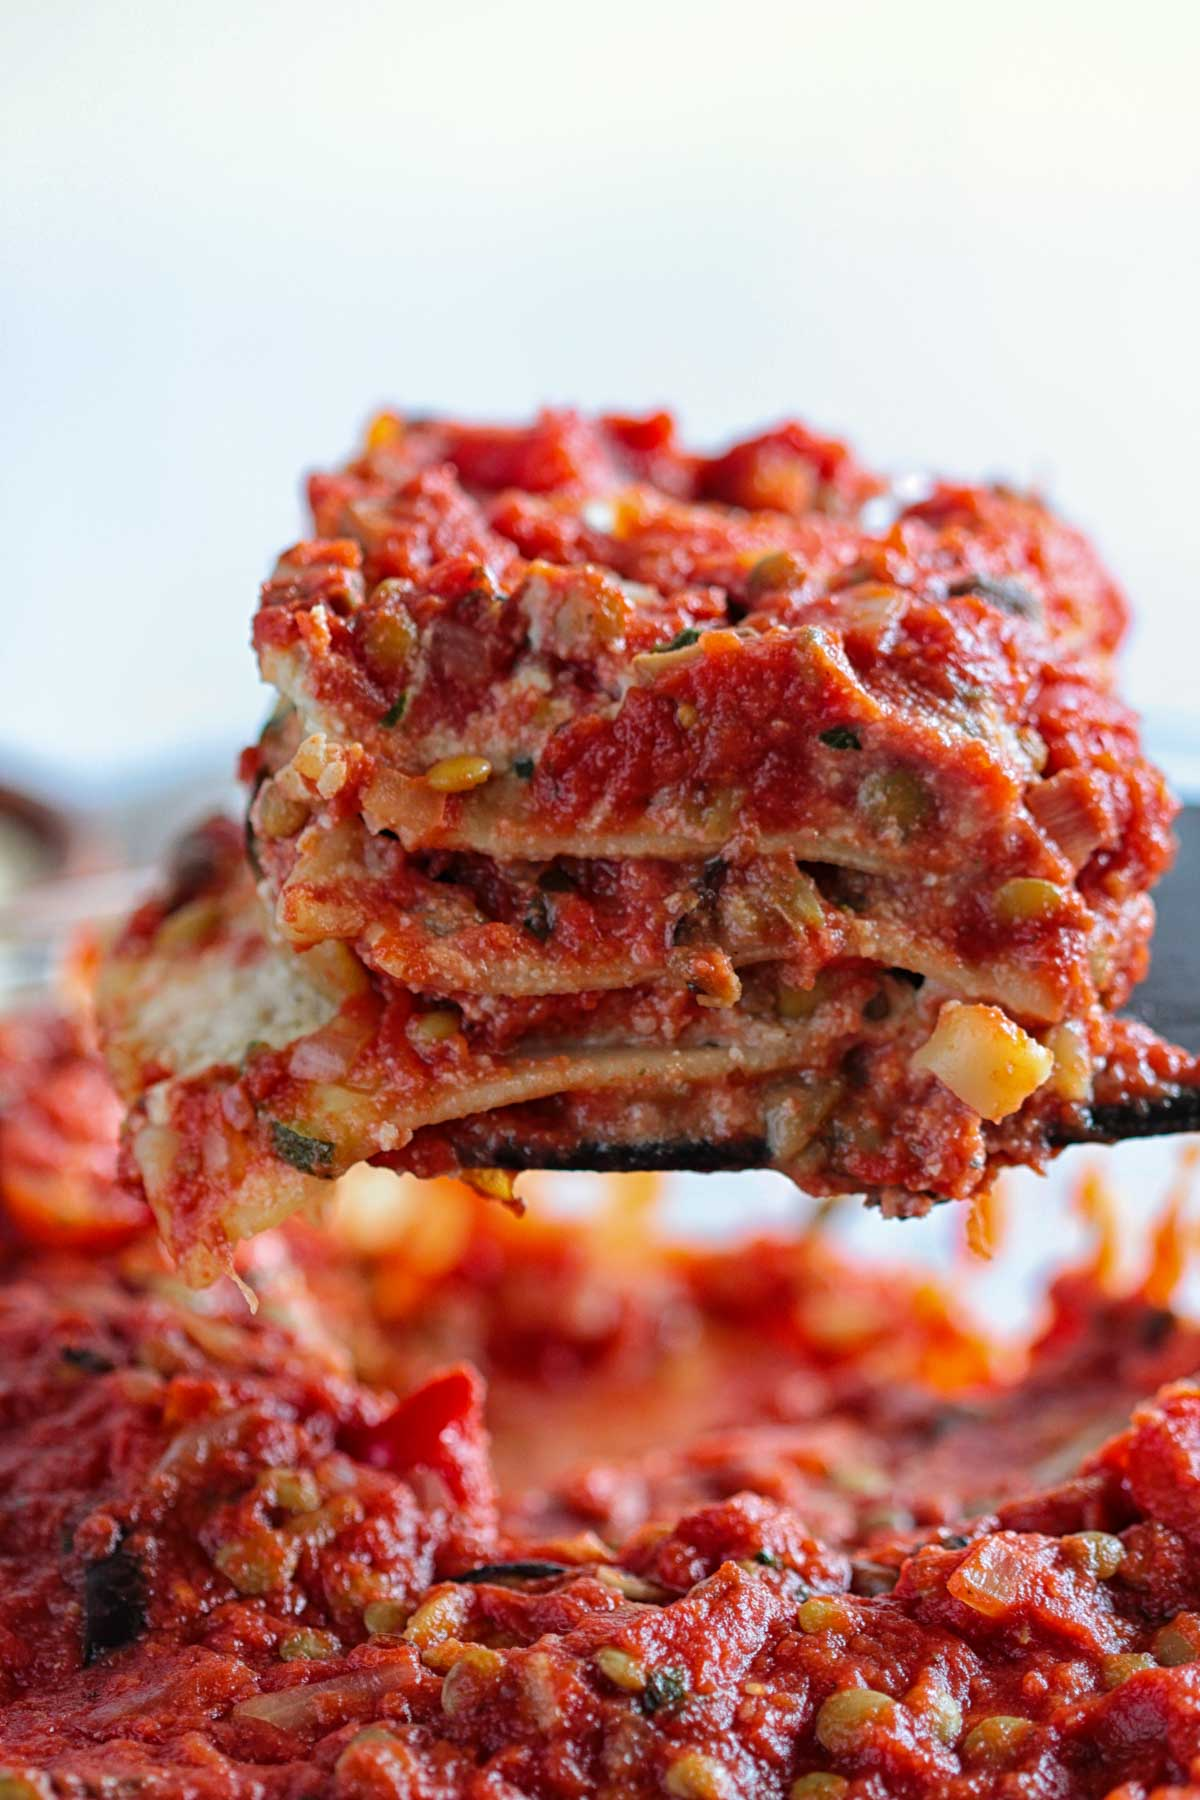 Italian Vegetable Vegan Lasagna with Lentil Bolognese and Roasted Vegetables Easy Almond Tofu Ricotta Recipe